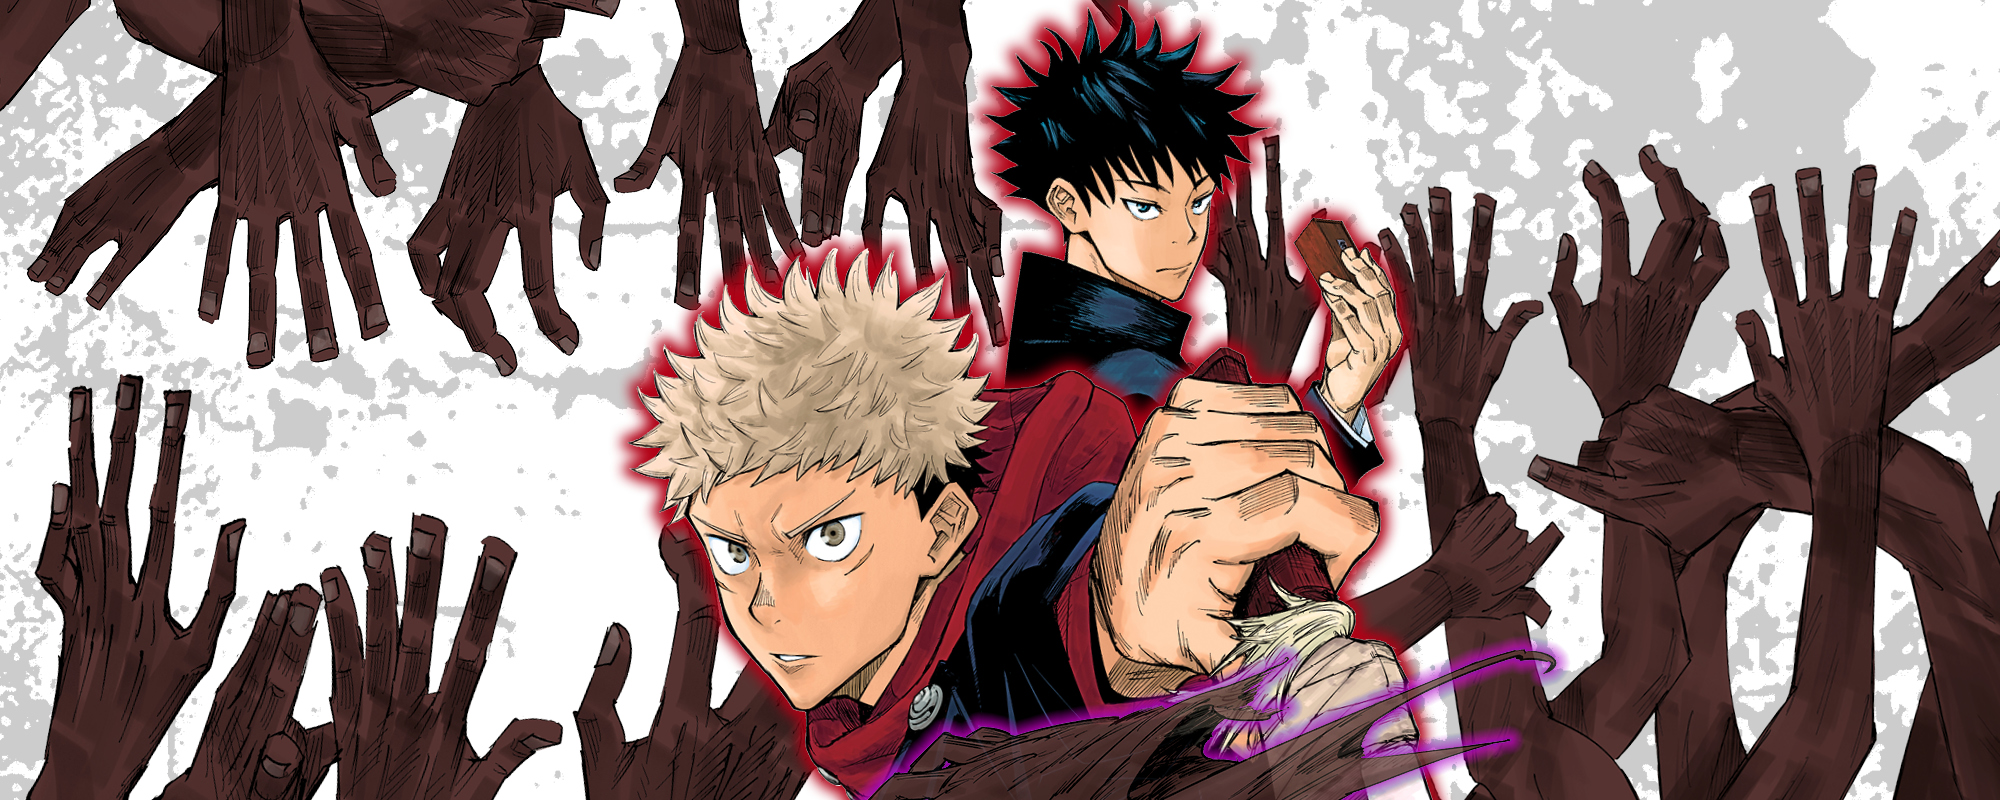 Jujutsu Kaisen Chapter 130 Release Date, Raw Scans and Read Online